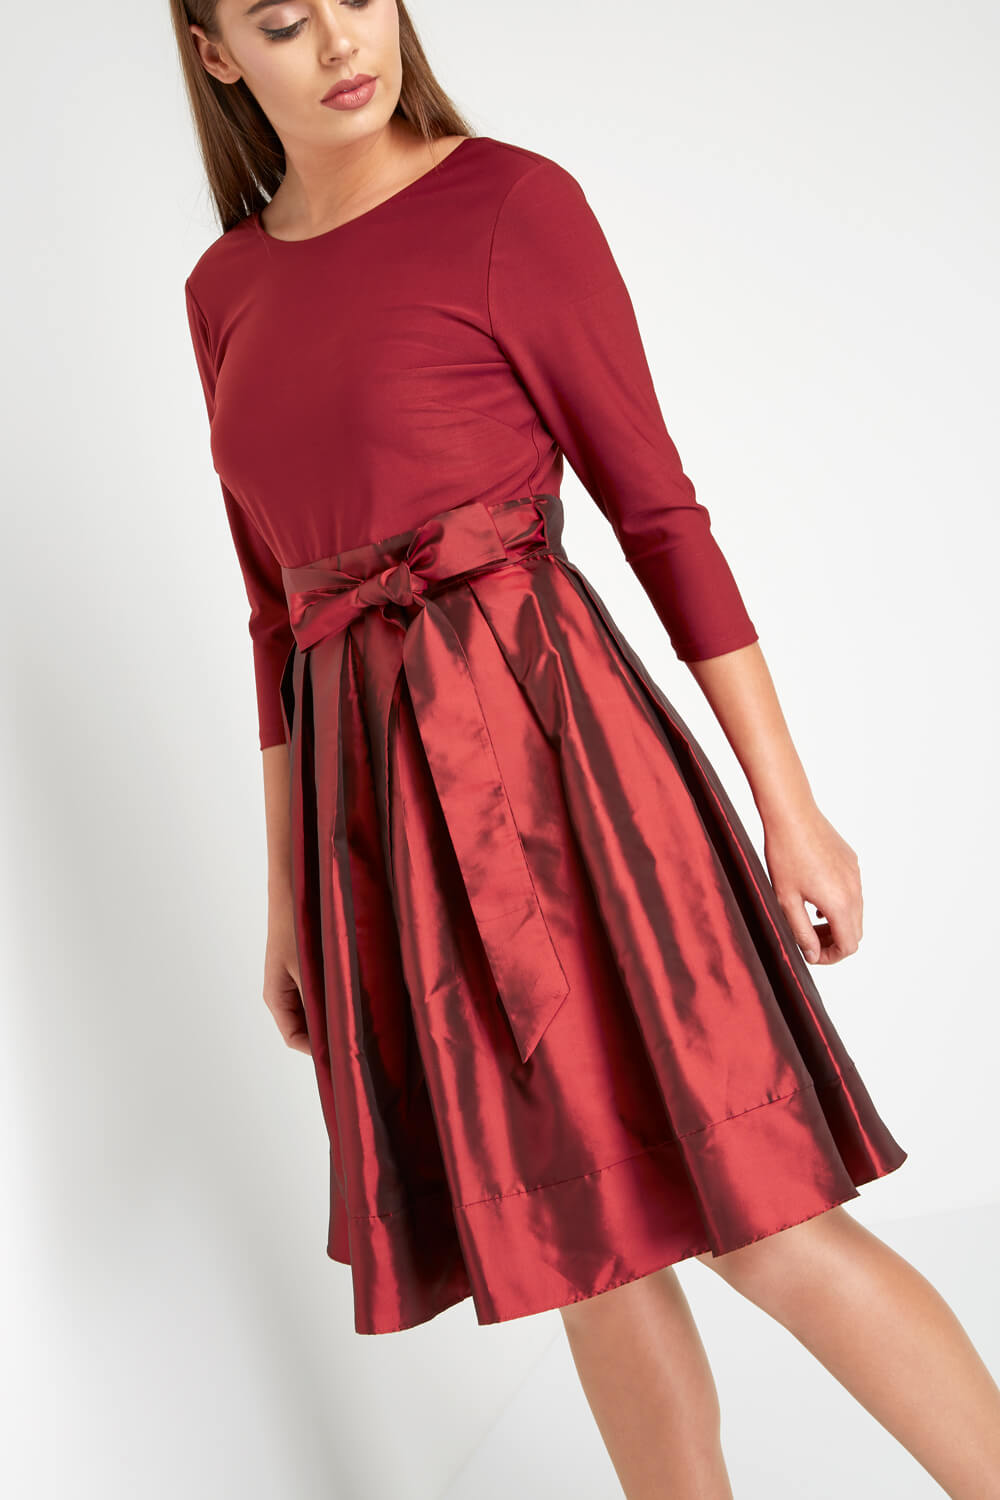 Roman-Originals-Women-039-s-Red-Fit-and-Flare-Dress-Sizes-10-20 thumbnail 10